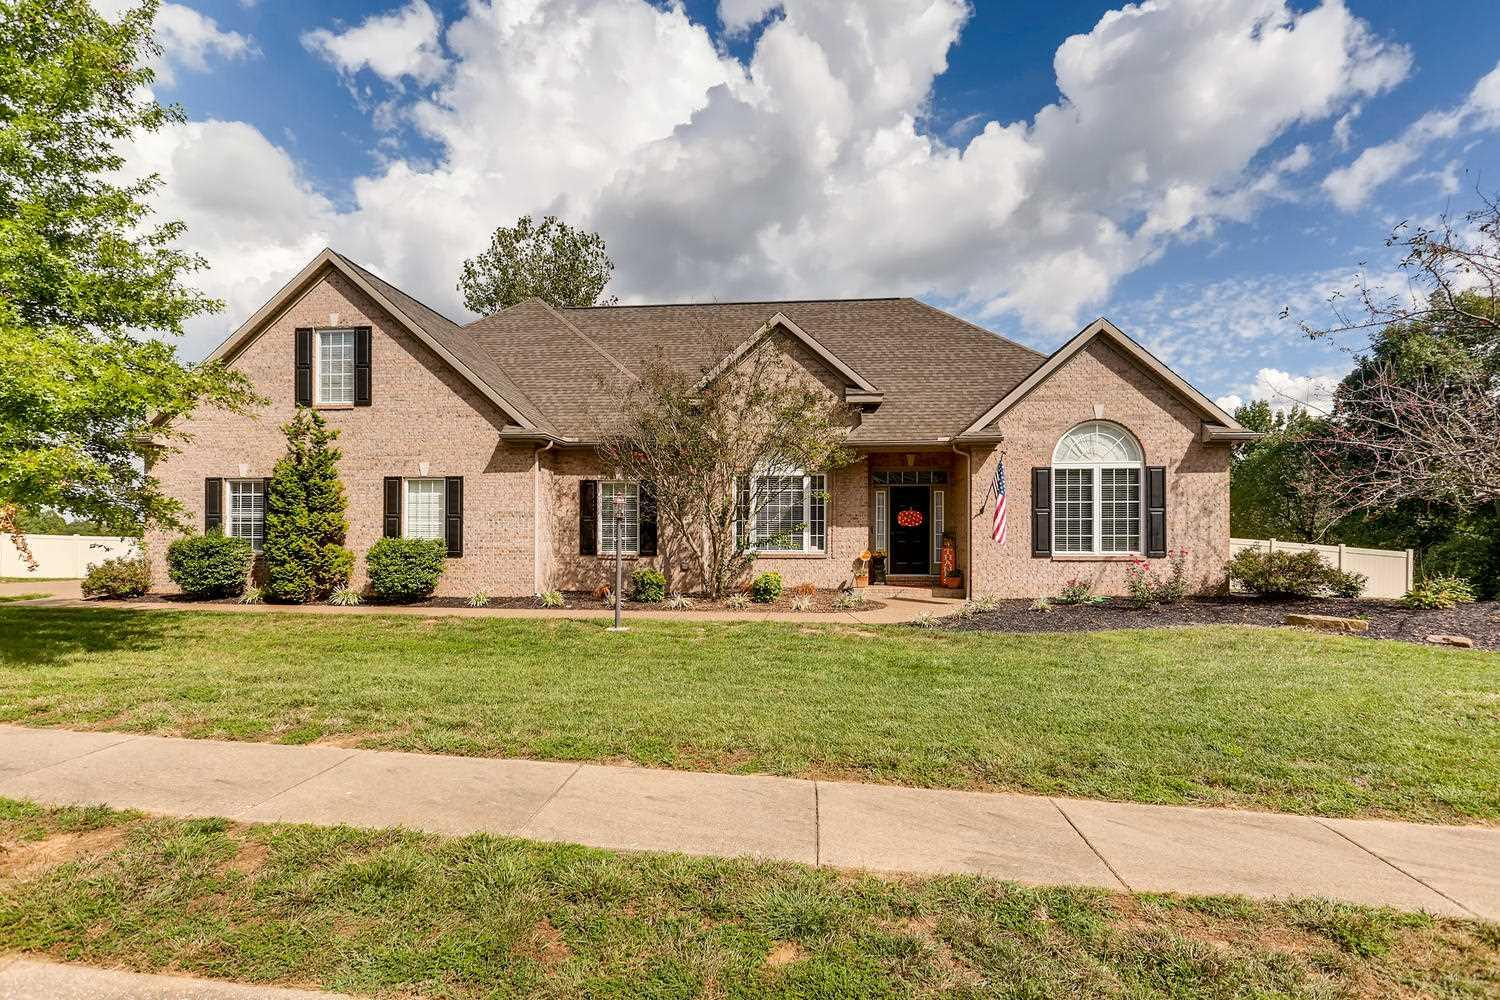 Remarkable 4-bedroom, 3.5-bath home located on a 0.9-acre lot with a fully-fenced backyard.  This spectacular home boasts an open floor plan, updated hardwood floors (2017), updated carpeting (2017), extensive custom trim and wood work, high ceilings, wood-trimmed columns, crown molding, and so much more.  The great room features a built-in entertainment center with gas fireplace, flanked by built-in bookshelves.  In addition to the formal dining room, there is a large dining area in the eat-in kitchen, which has castled crown-topped cabinets, granite counters, pendant and canned lighting, and access to the covered back porch.  The main-level master suite offers a tray ceiling with crown molding, two over-sized walk-in closets, and a full bath with double walk-in shower, a large vanity, and garden tub.  Just off the garage is a spacious drop-zone, half bath, and laundry room.  Two additional bedrooms and a full bath complete the main-level of the home.  Upstairs is an open family room with an office, a large bedroom, and a full bath.  There is also walk-in access to the floored attic space.  The back yard is a great spot to entertain with a water feature just off the covered porch, and a new vinyl privacy fence (2017) surrounding the enormous back yard!  Sale includes: range; dishwasher; microwave; refrigerator; washer; dryer; window treatments; laundry room hangers; gas grill; and garage refrigerator.  Sale excludes: trampoline.